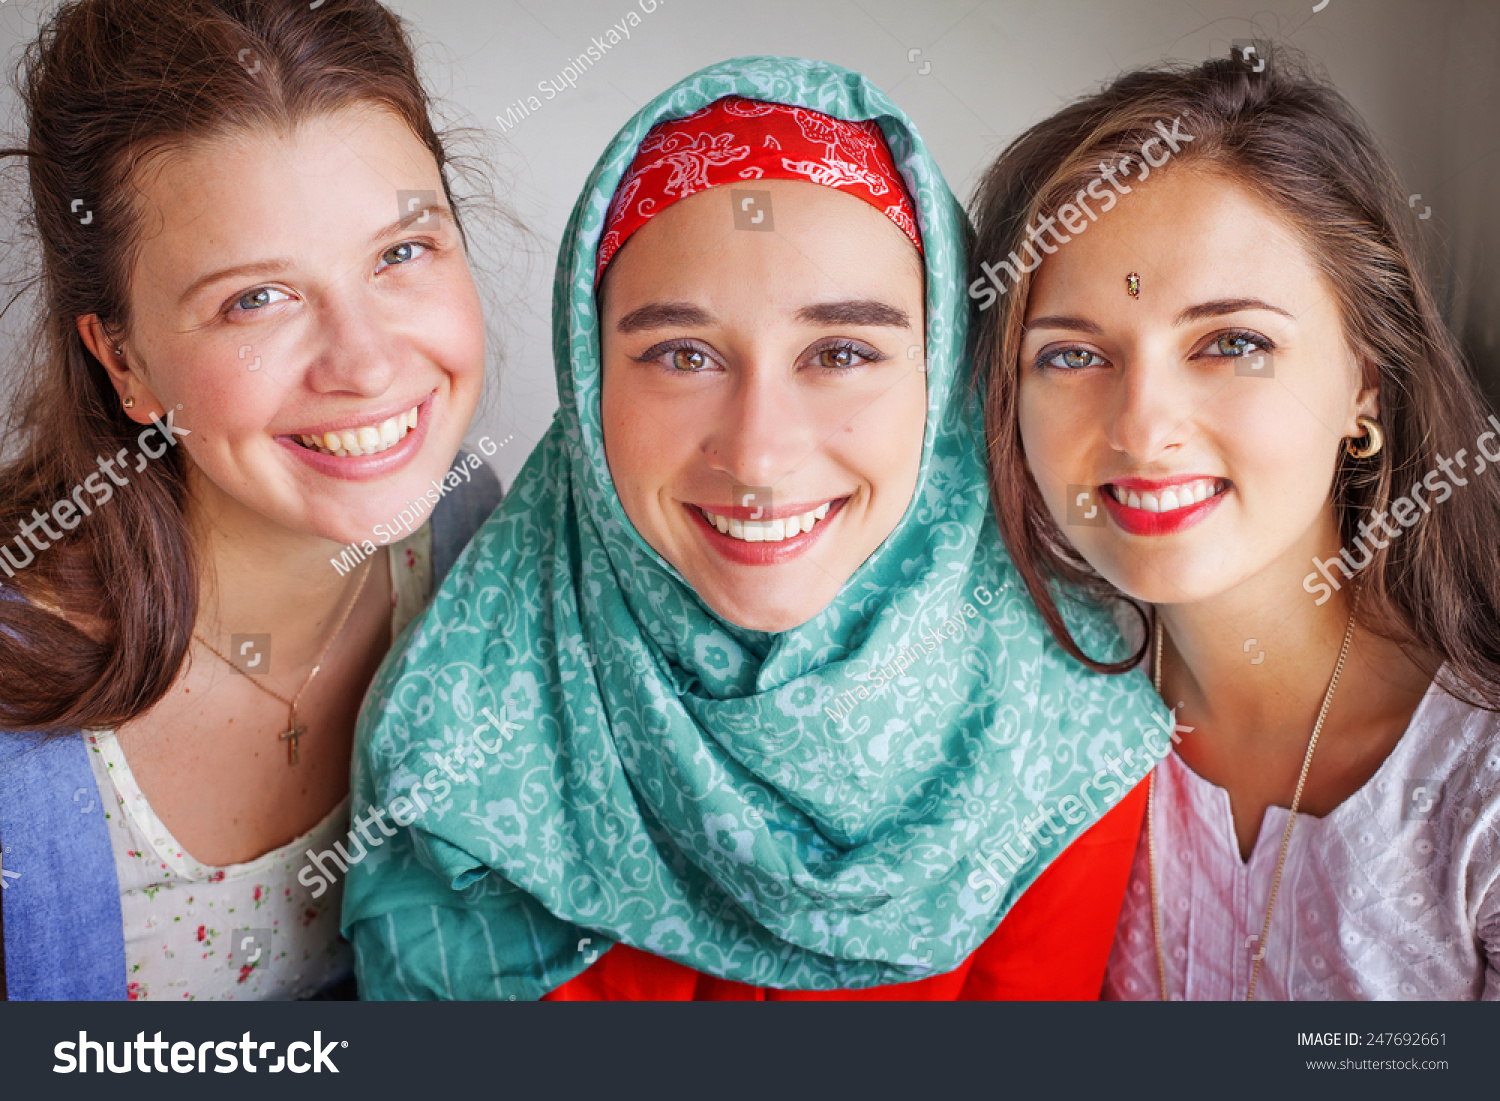 three diverse faiths 1 unit 7 the spread of religions section 1 unit materials questions to consider question 1 how did buddhism, christianity, and islam spread across the world, and why.